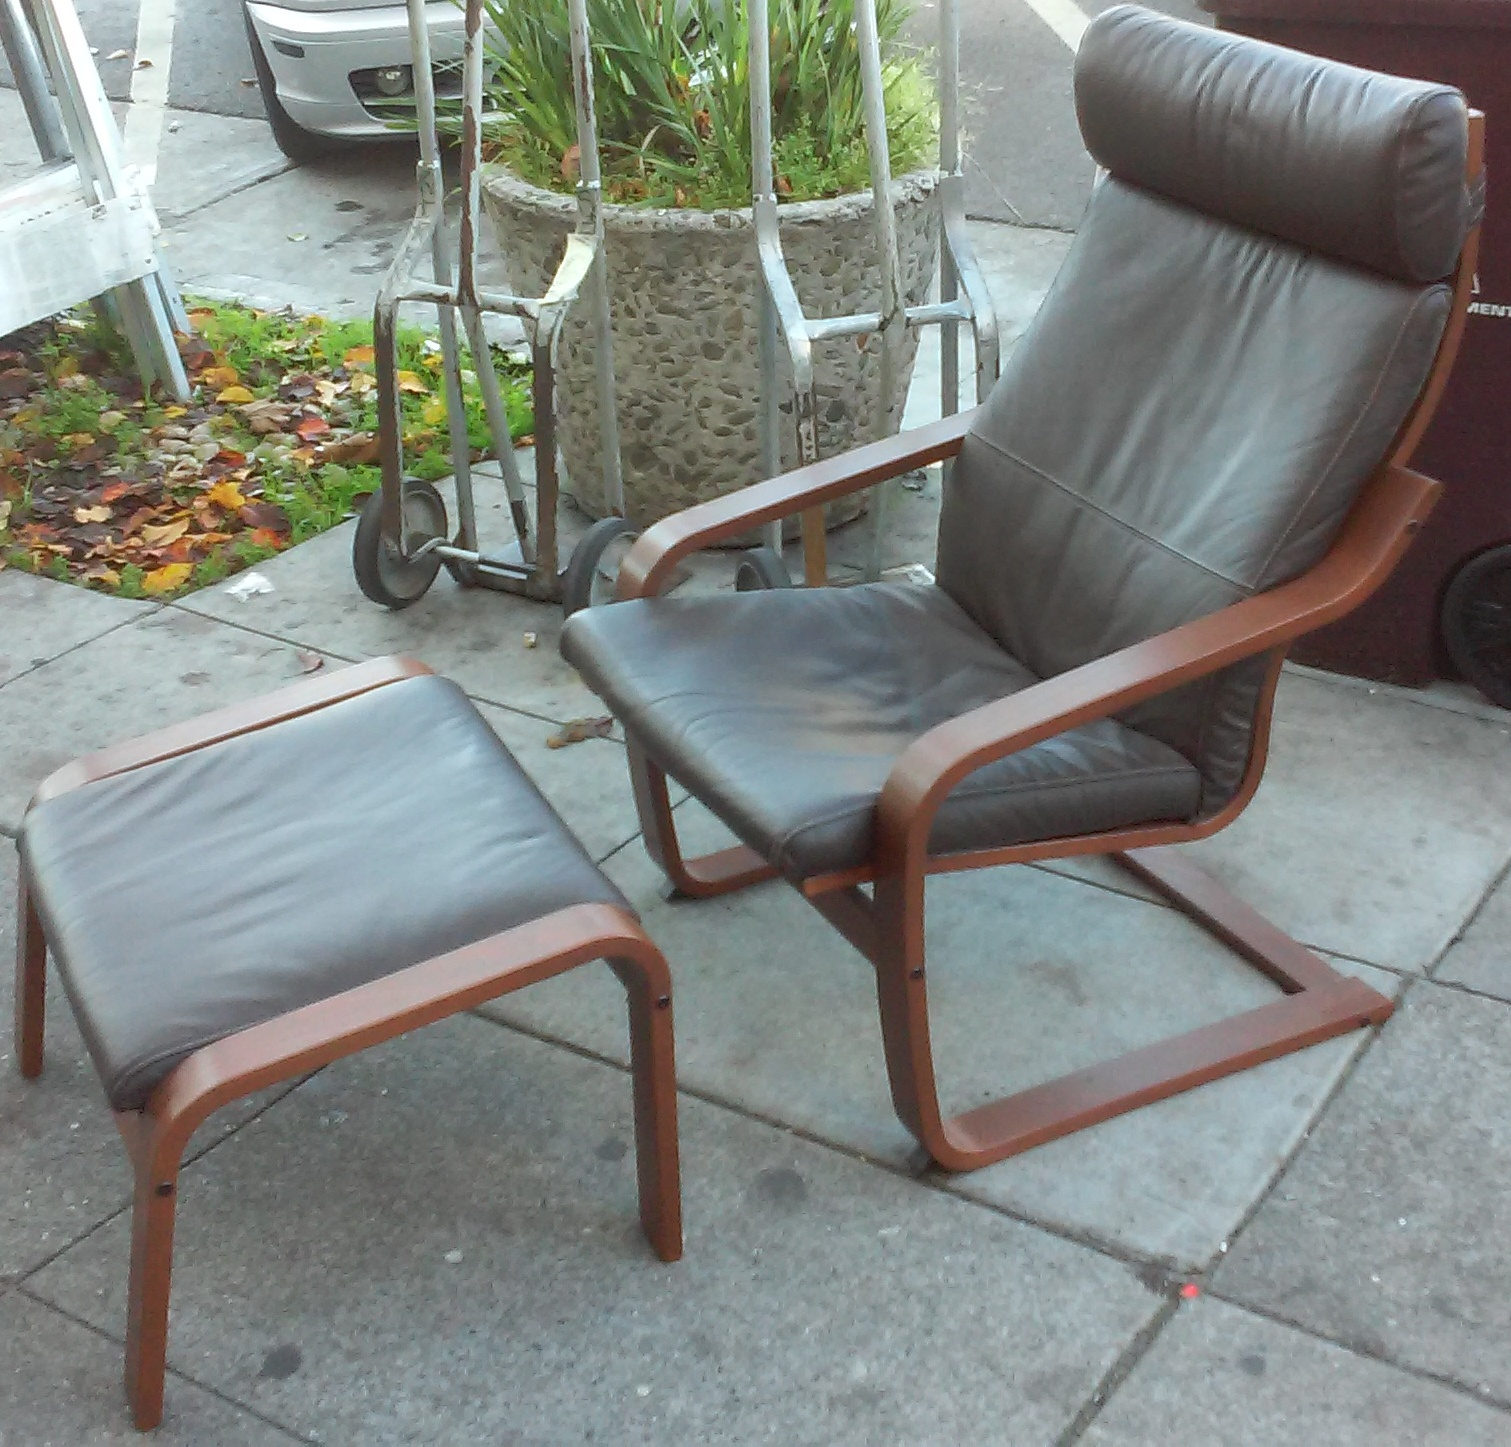 Uhuru furniture collectibles sold leather poang chair with ottoman 135 - Poang chair leather ...